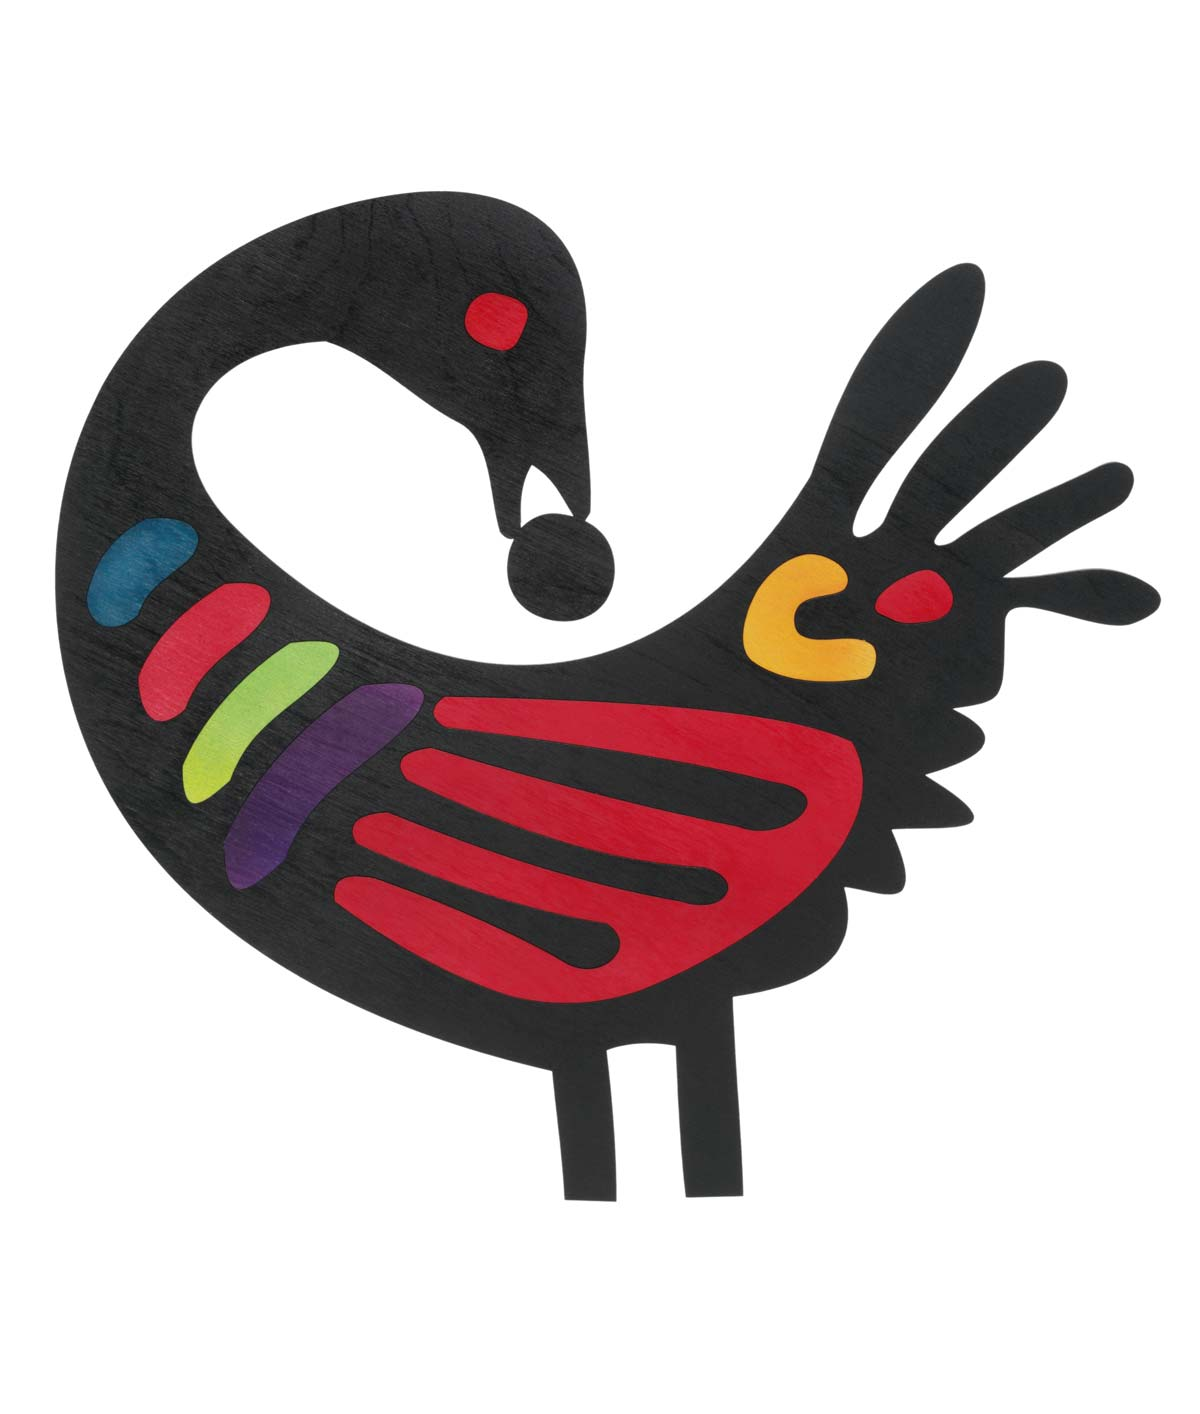 The Sankofa Bird reminds us that we must continue to move forward as we remember our past. And at the same time we plant a seed for the future generations that come after us.